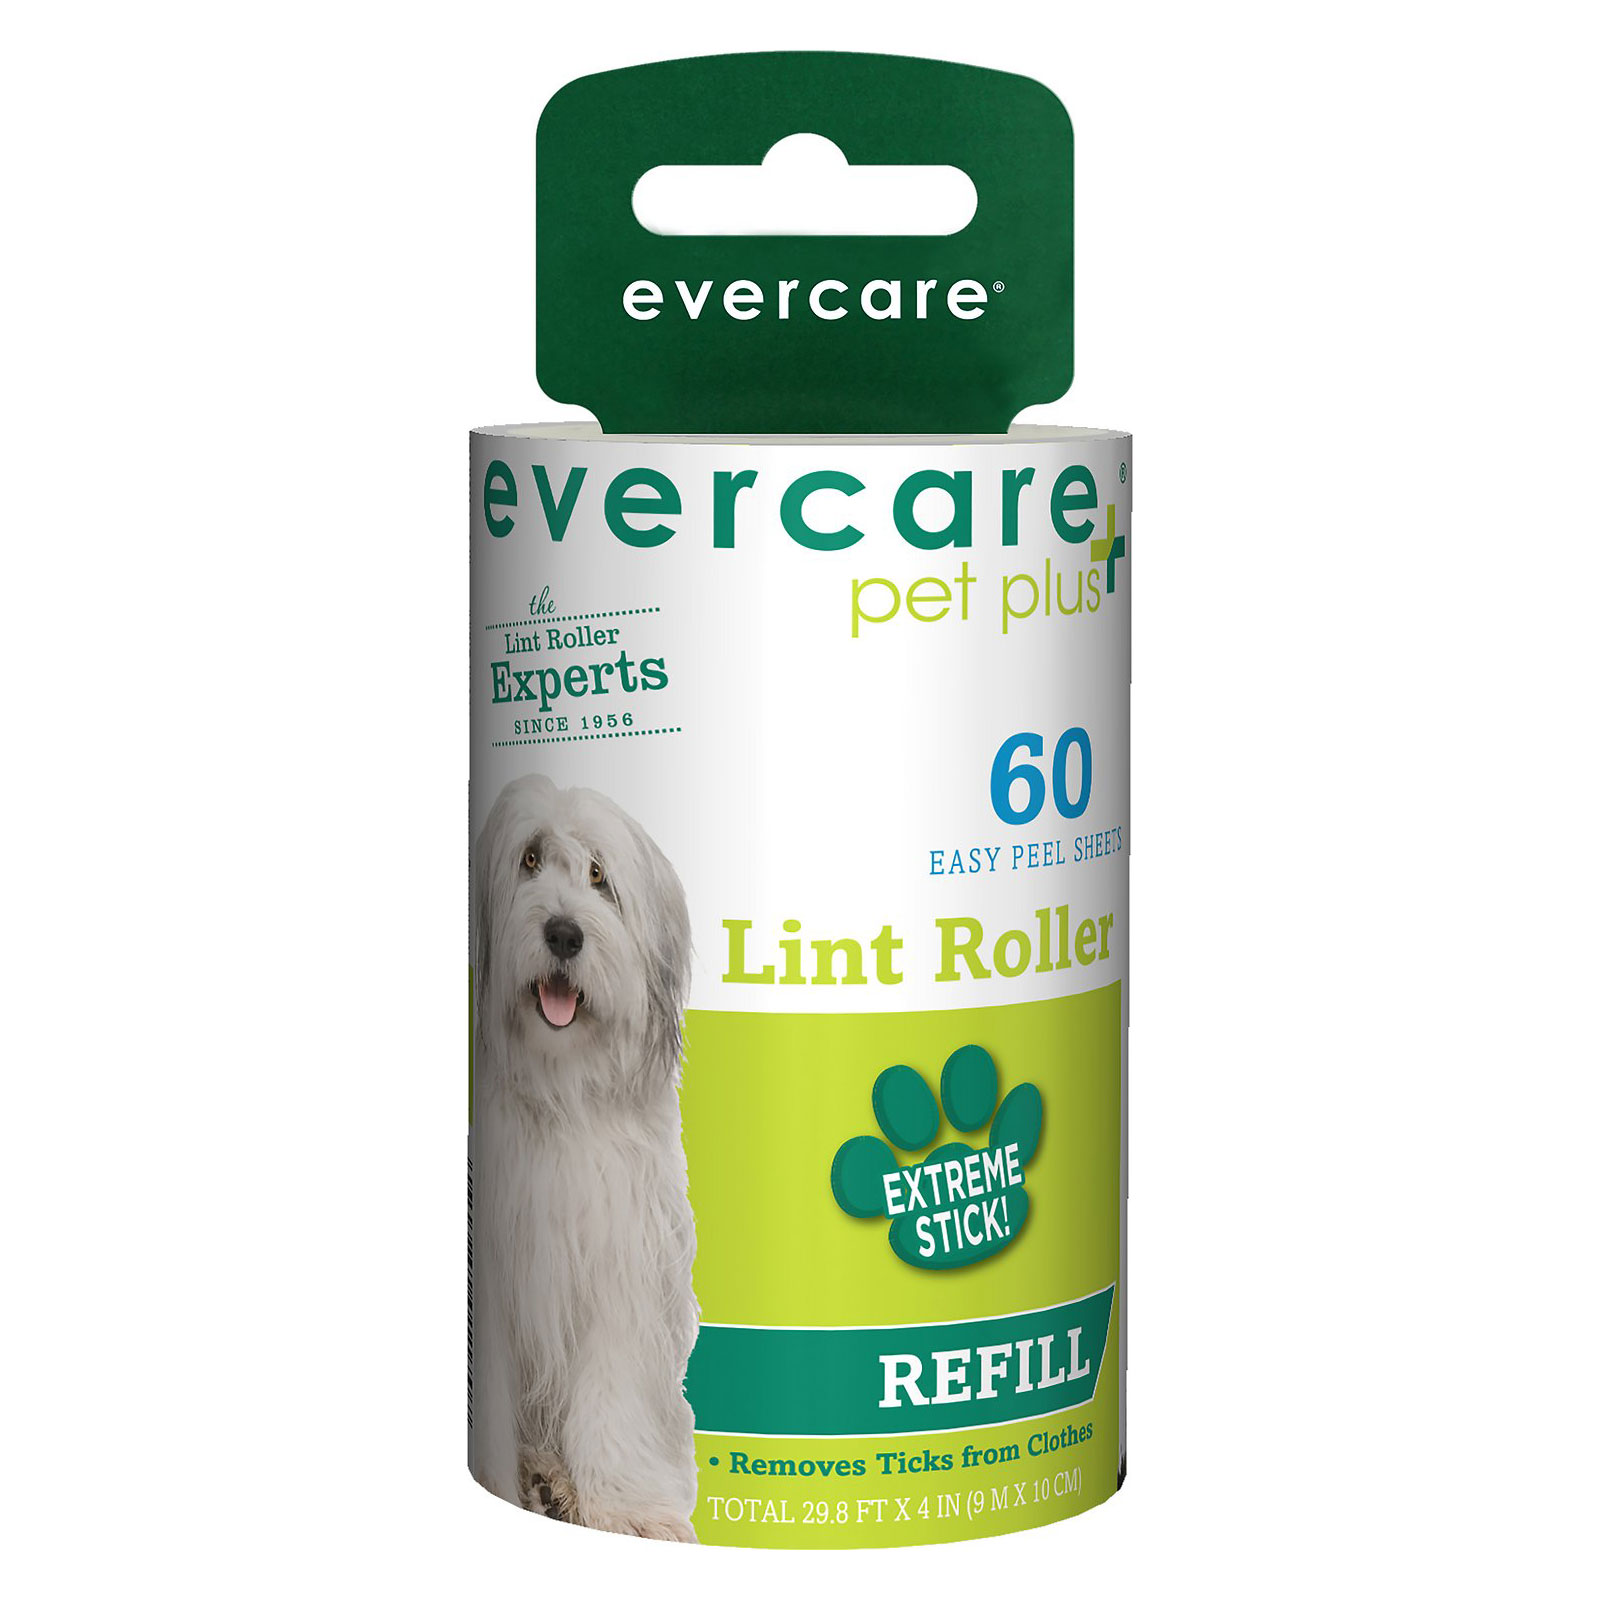 Evercare Pet Extreme Stick Refill 60 Sheet Lint Roller